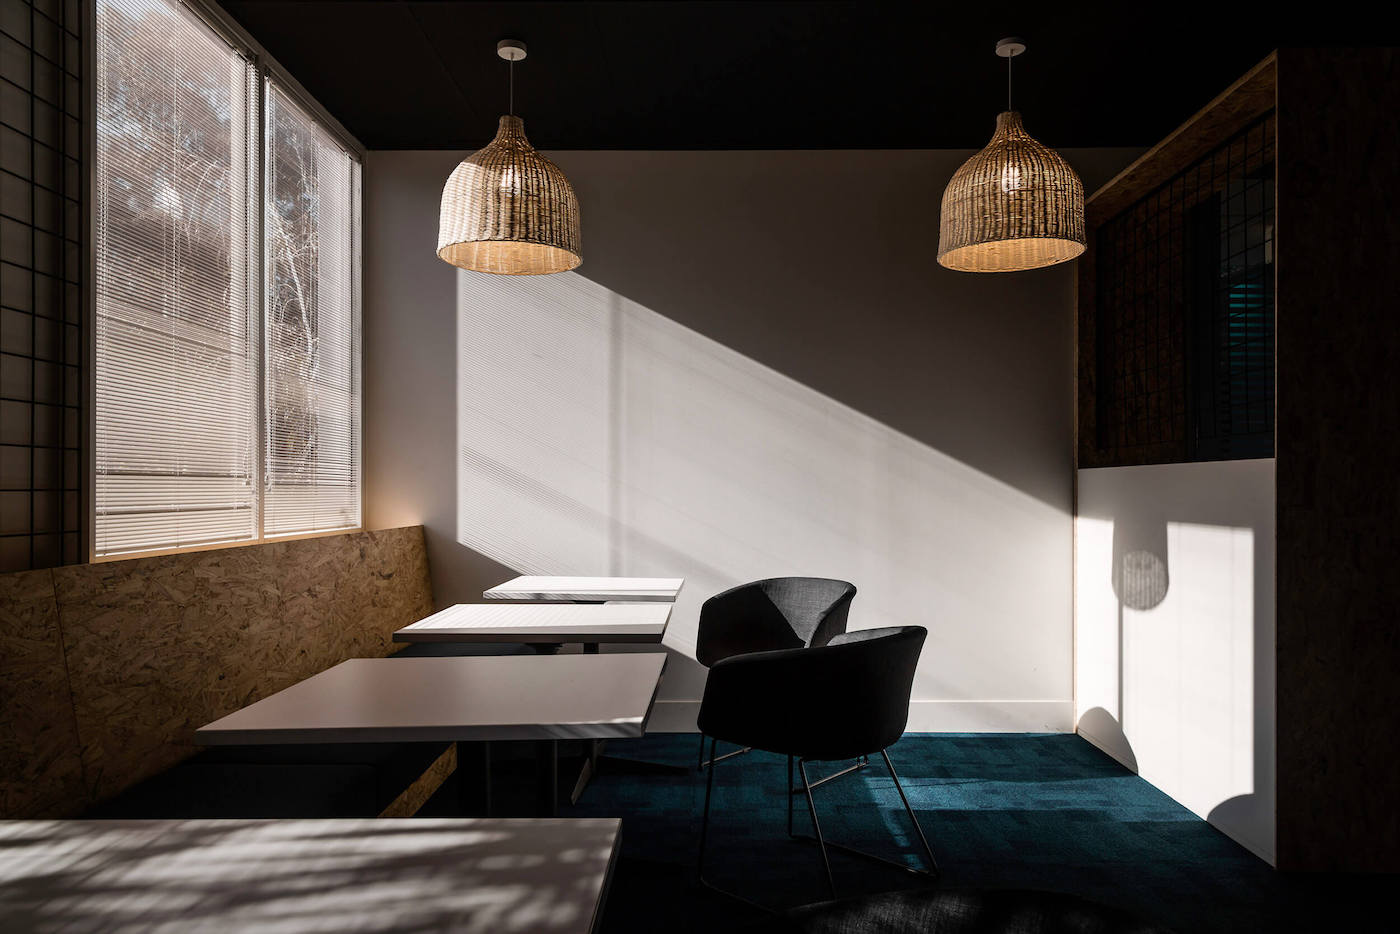 Meeting space with rattan pendants